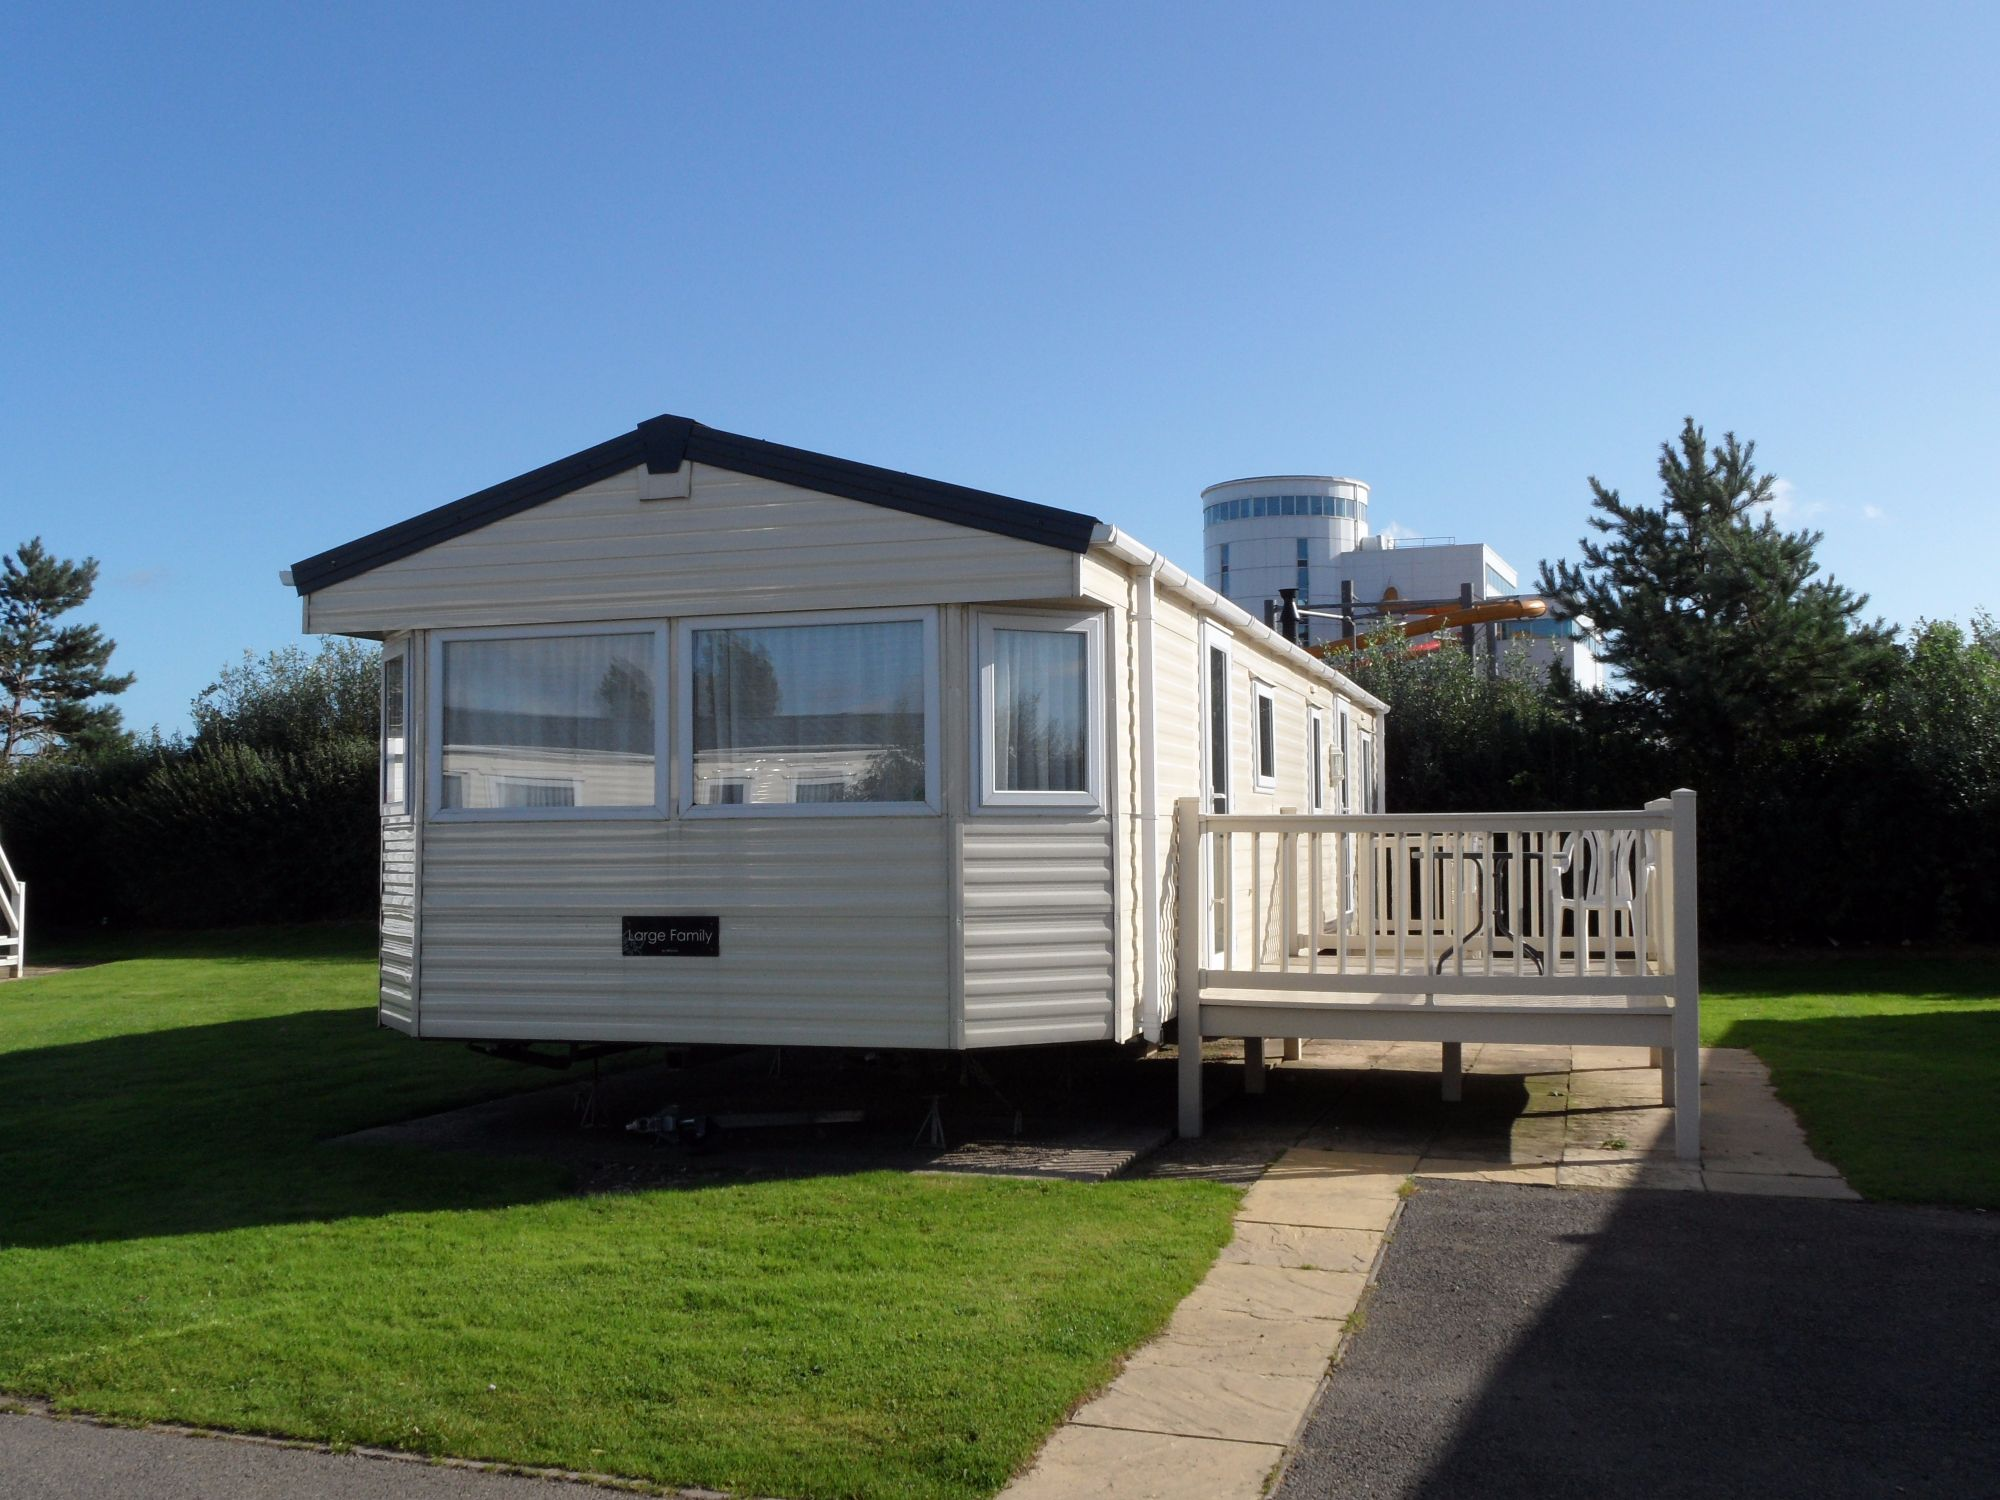 Butlins Skegness Caravan Holidays